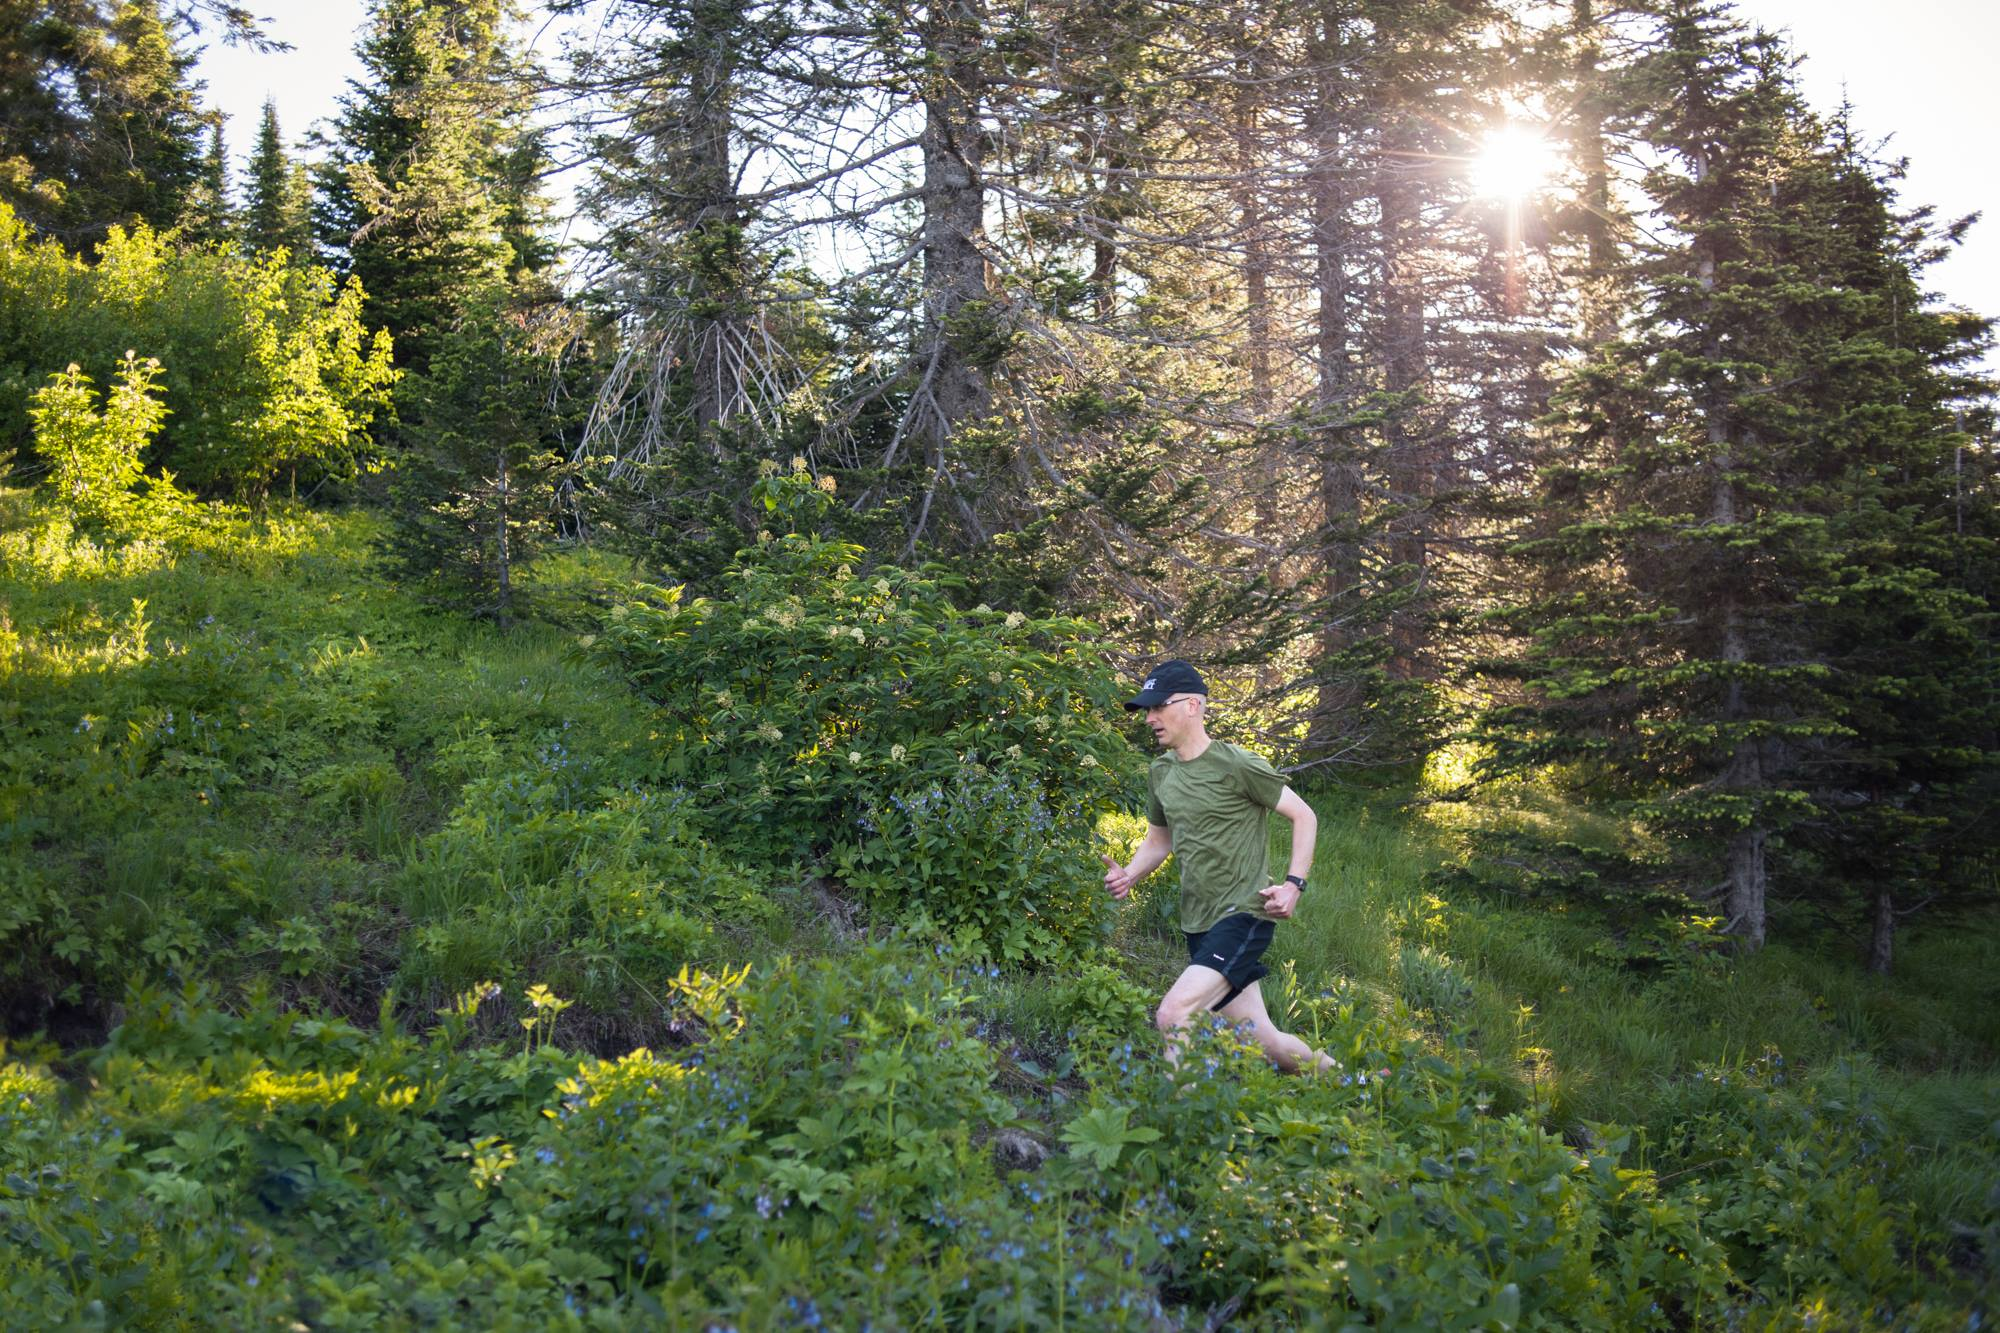 Brad Thiessen runs on Mount Spokane (Photo: Craig Goodwin)